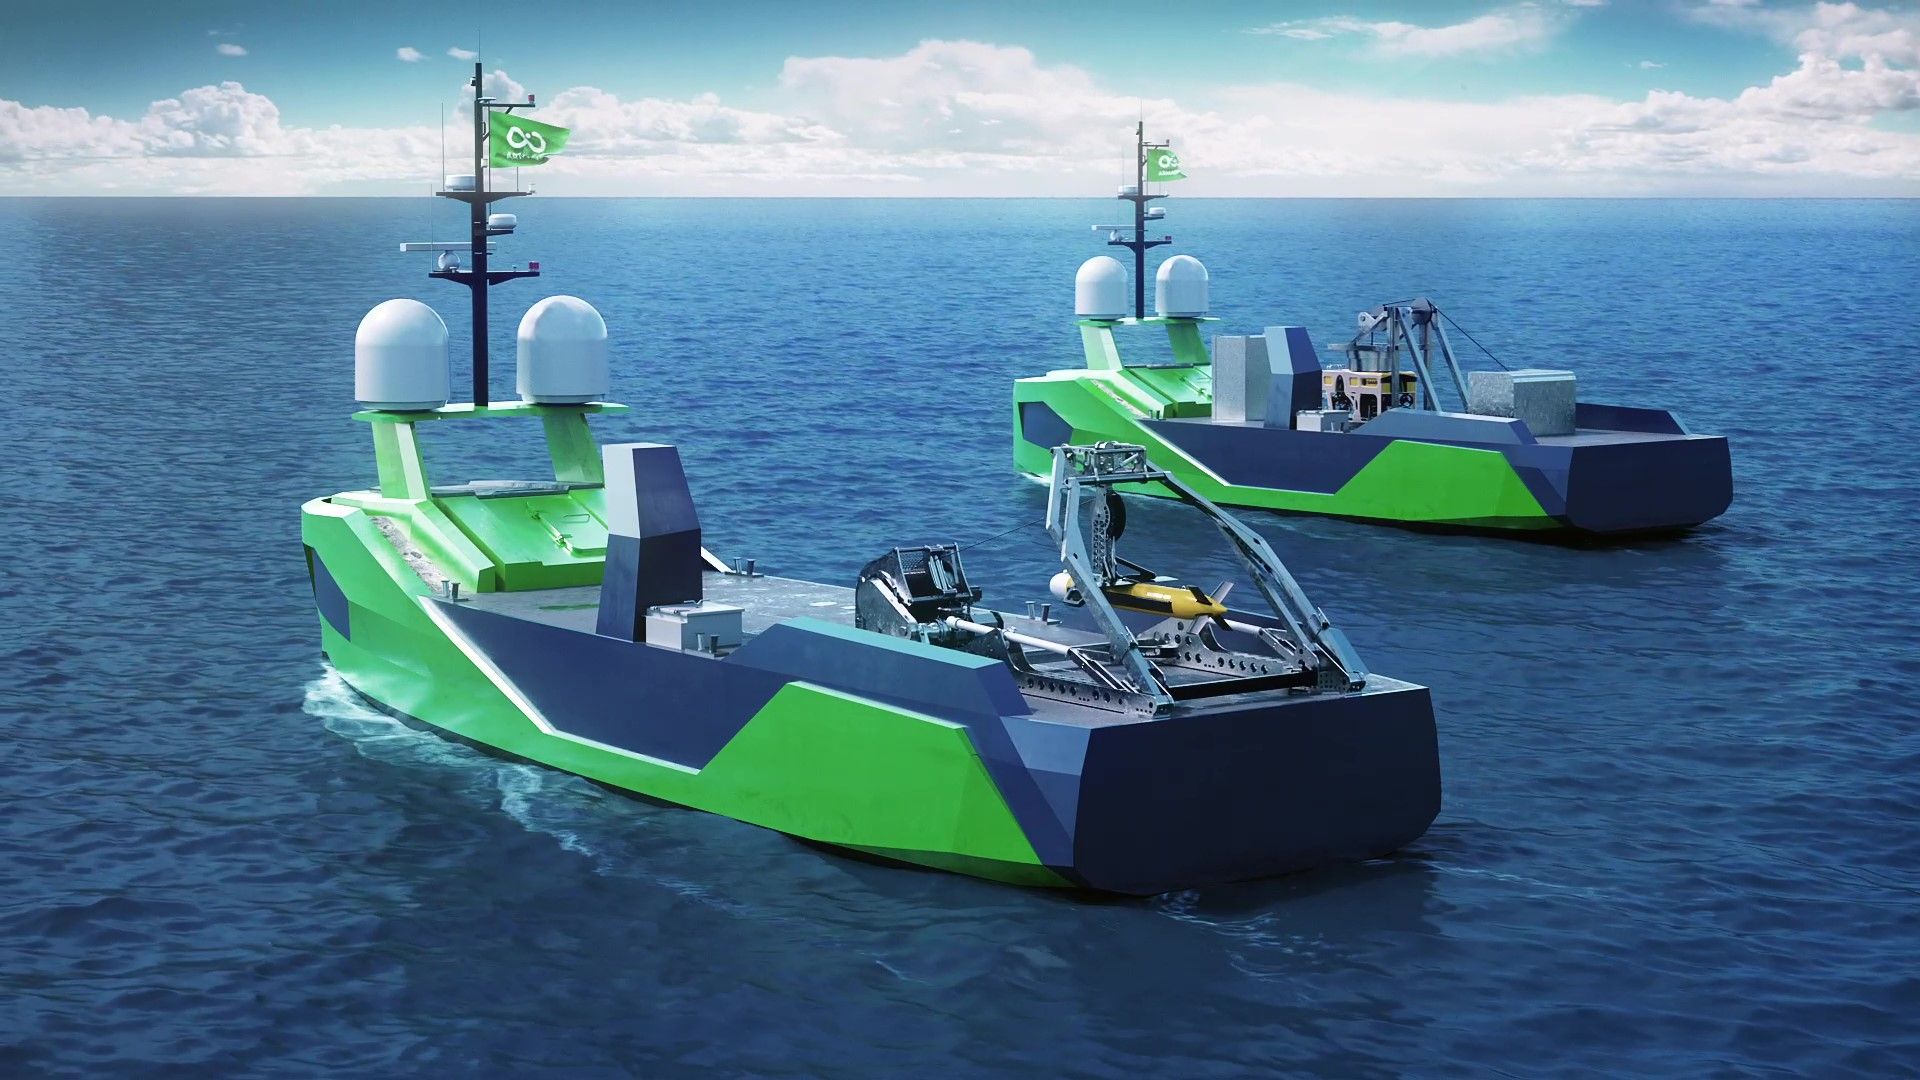 Ocean Infinity acquires MMT to expand AUV and uncrewed vessel capabilities